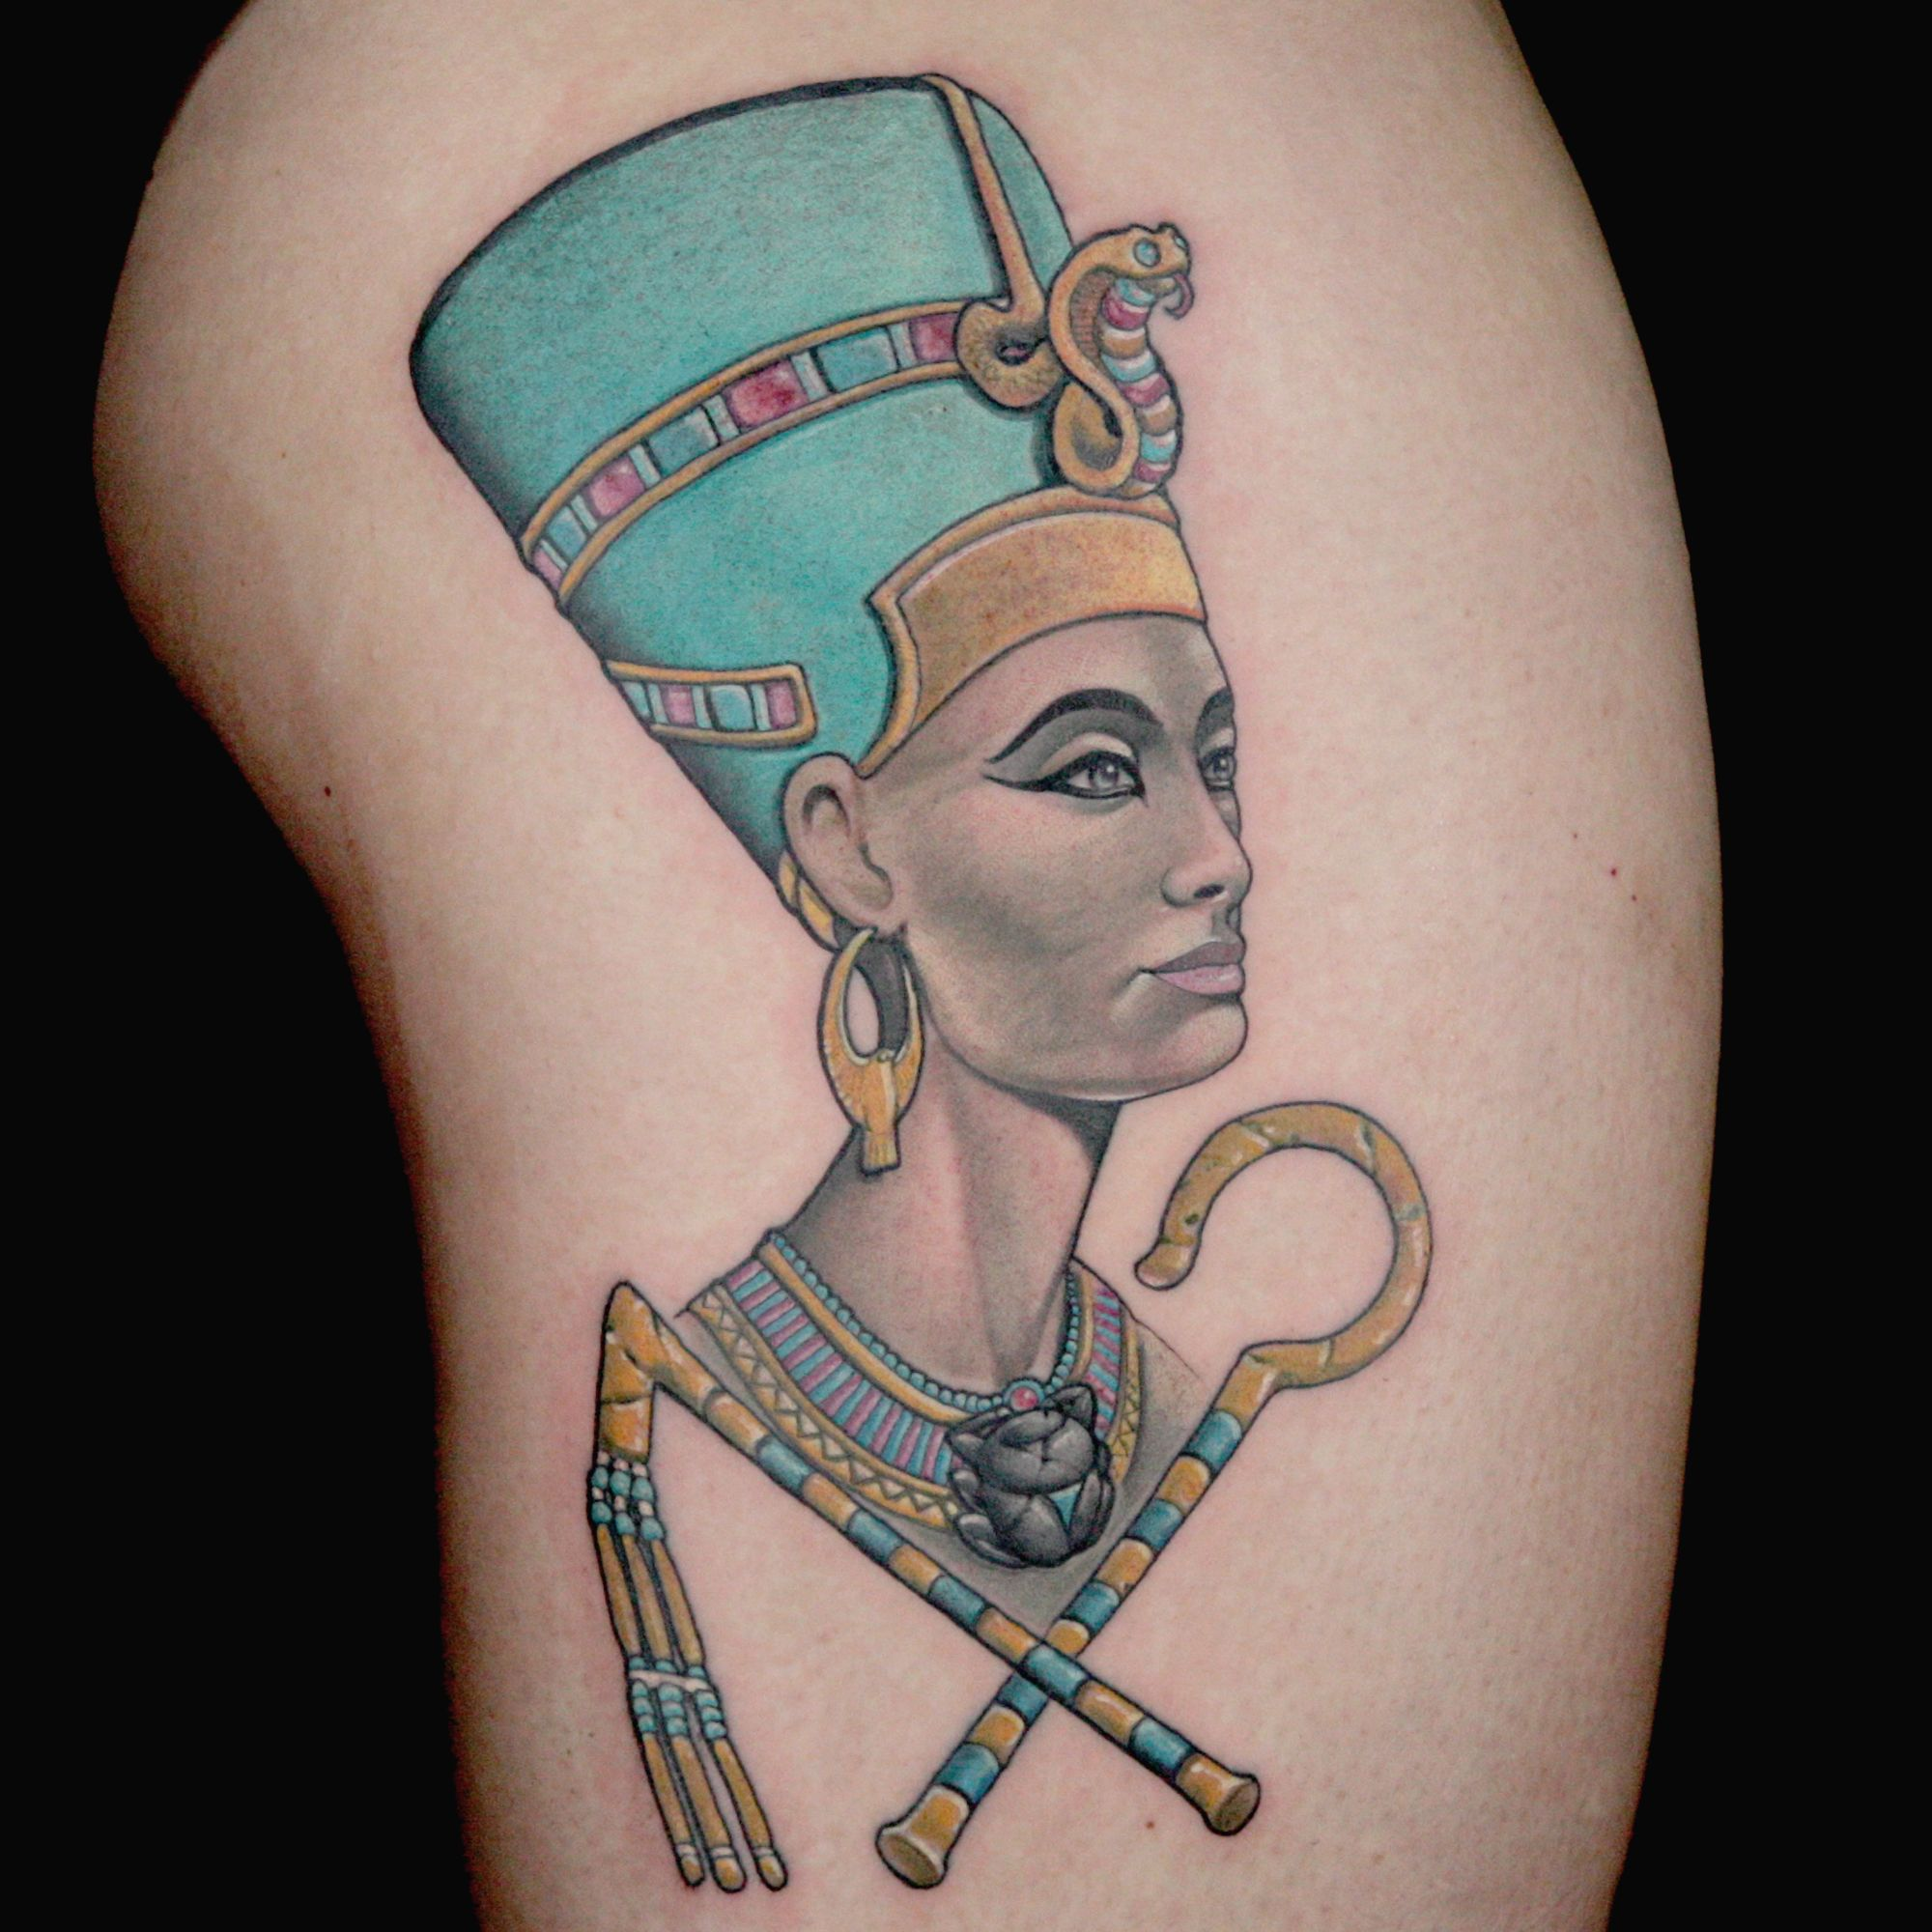 Queen Nefertiti Tattoo: Check Out This High Res Photo Of Craig Foster's Tattoo